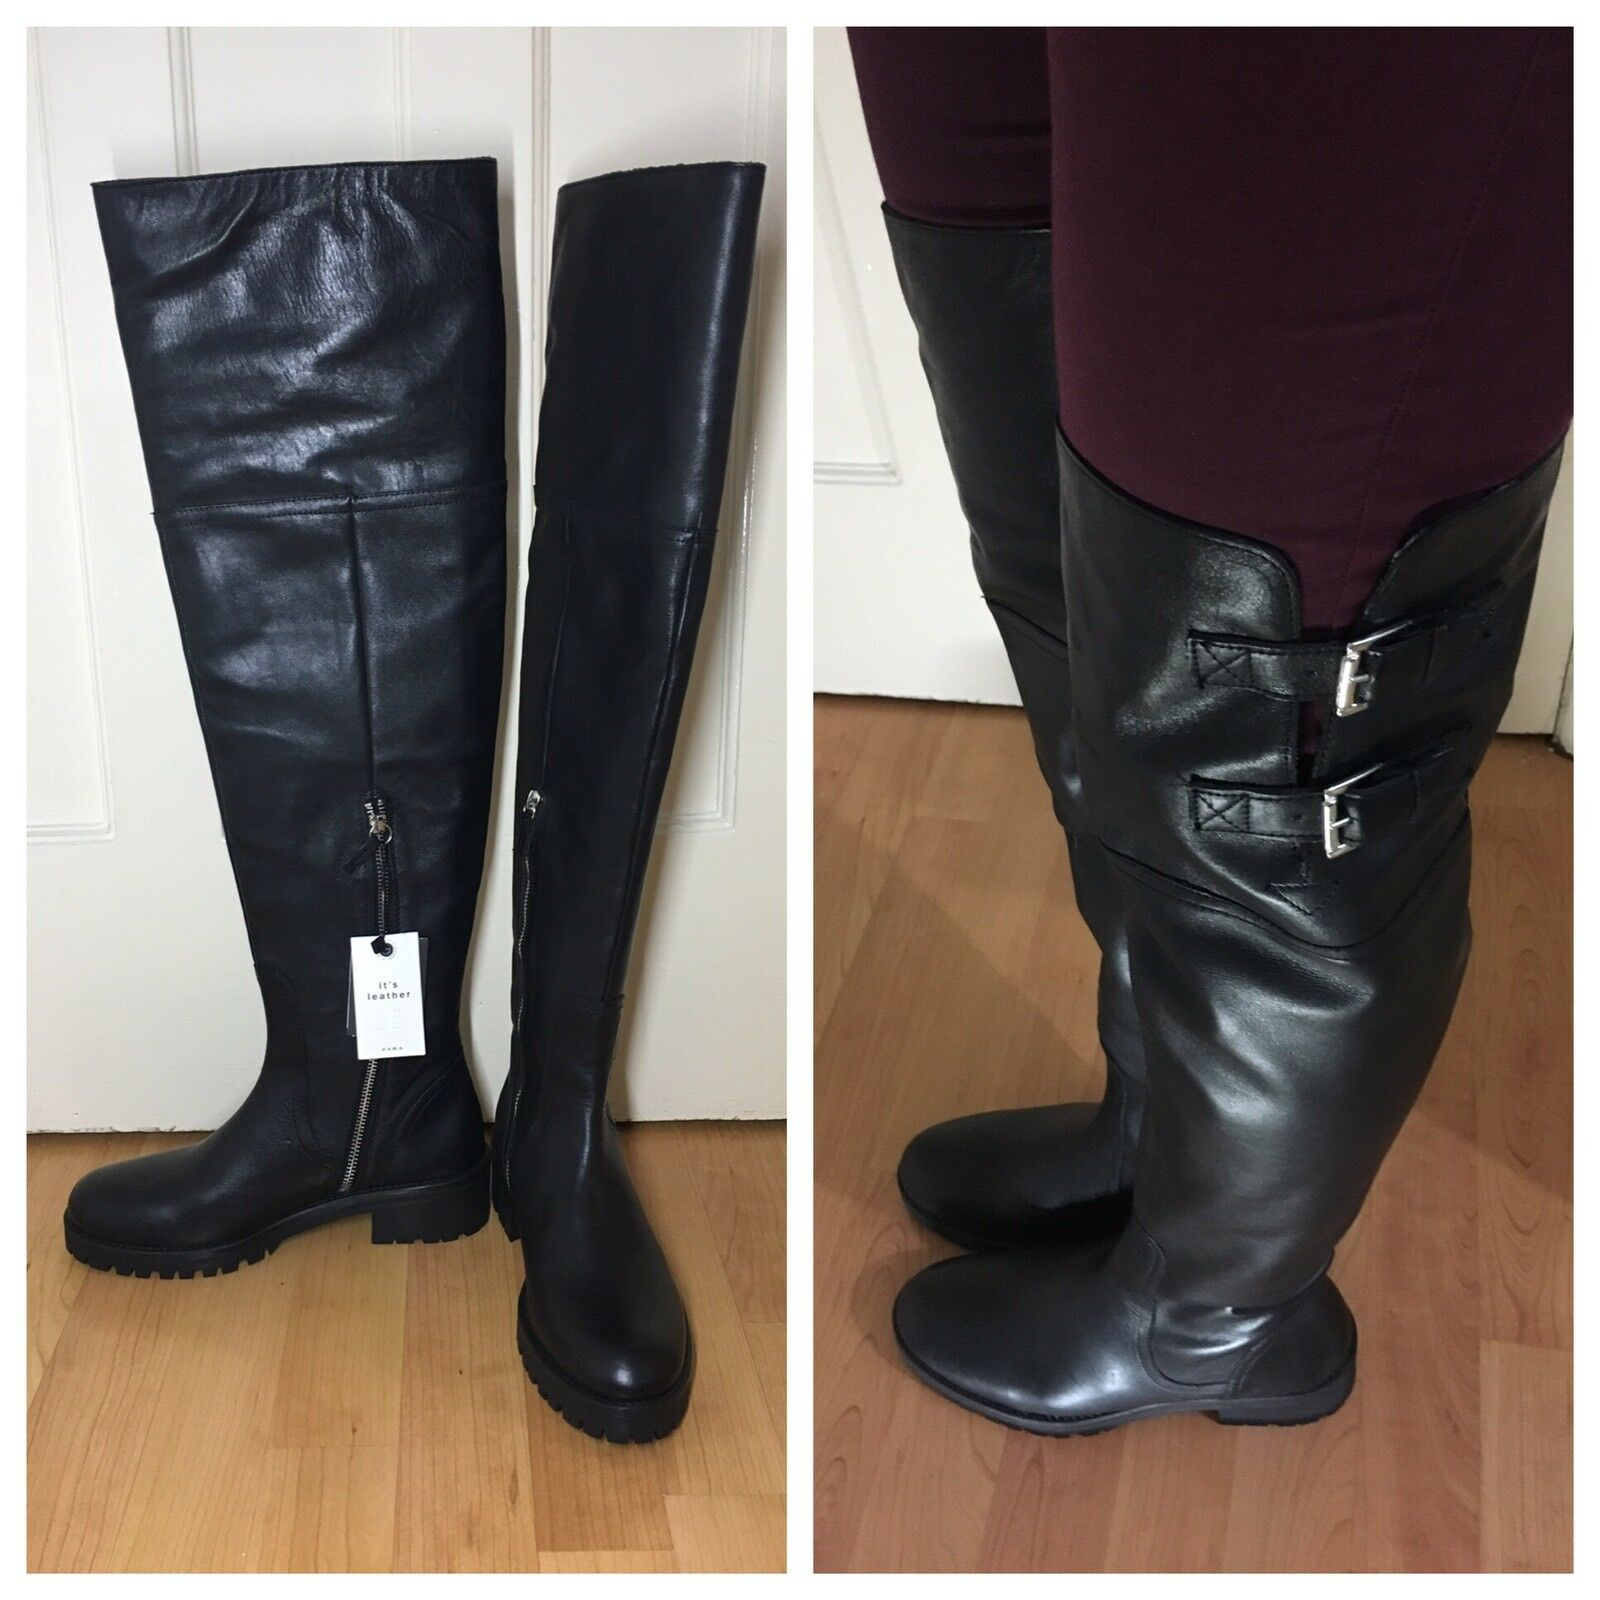 ZARA NEU BLACK REAL LEATHER OVER THE KNEE FLAT BUCKLE BOOTS SIZE 3